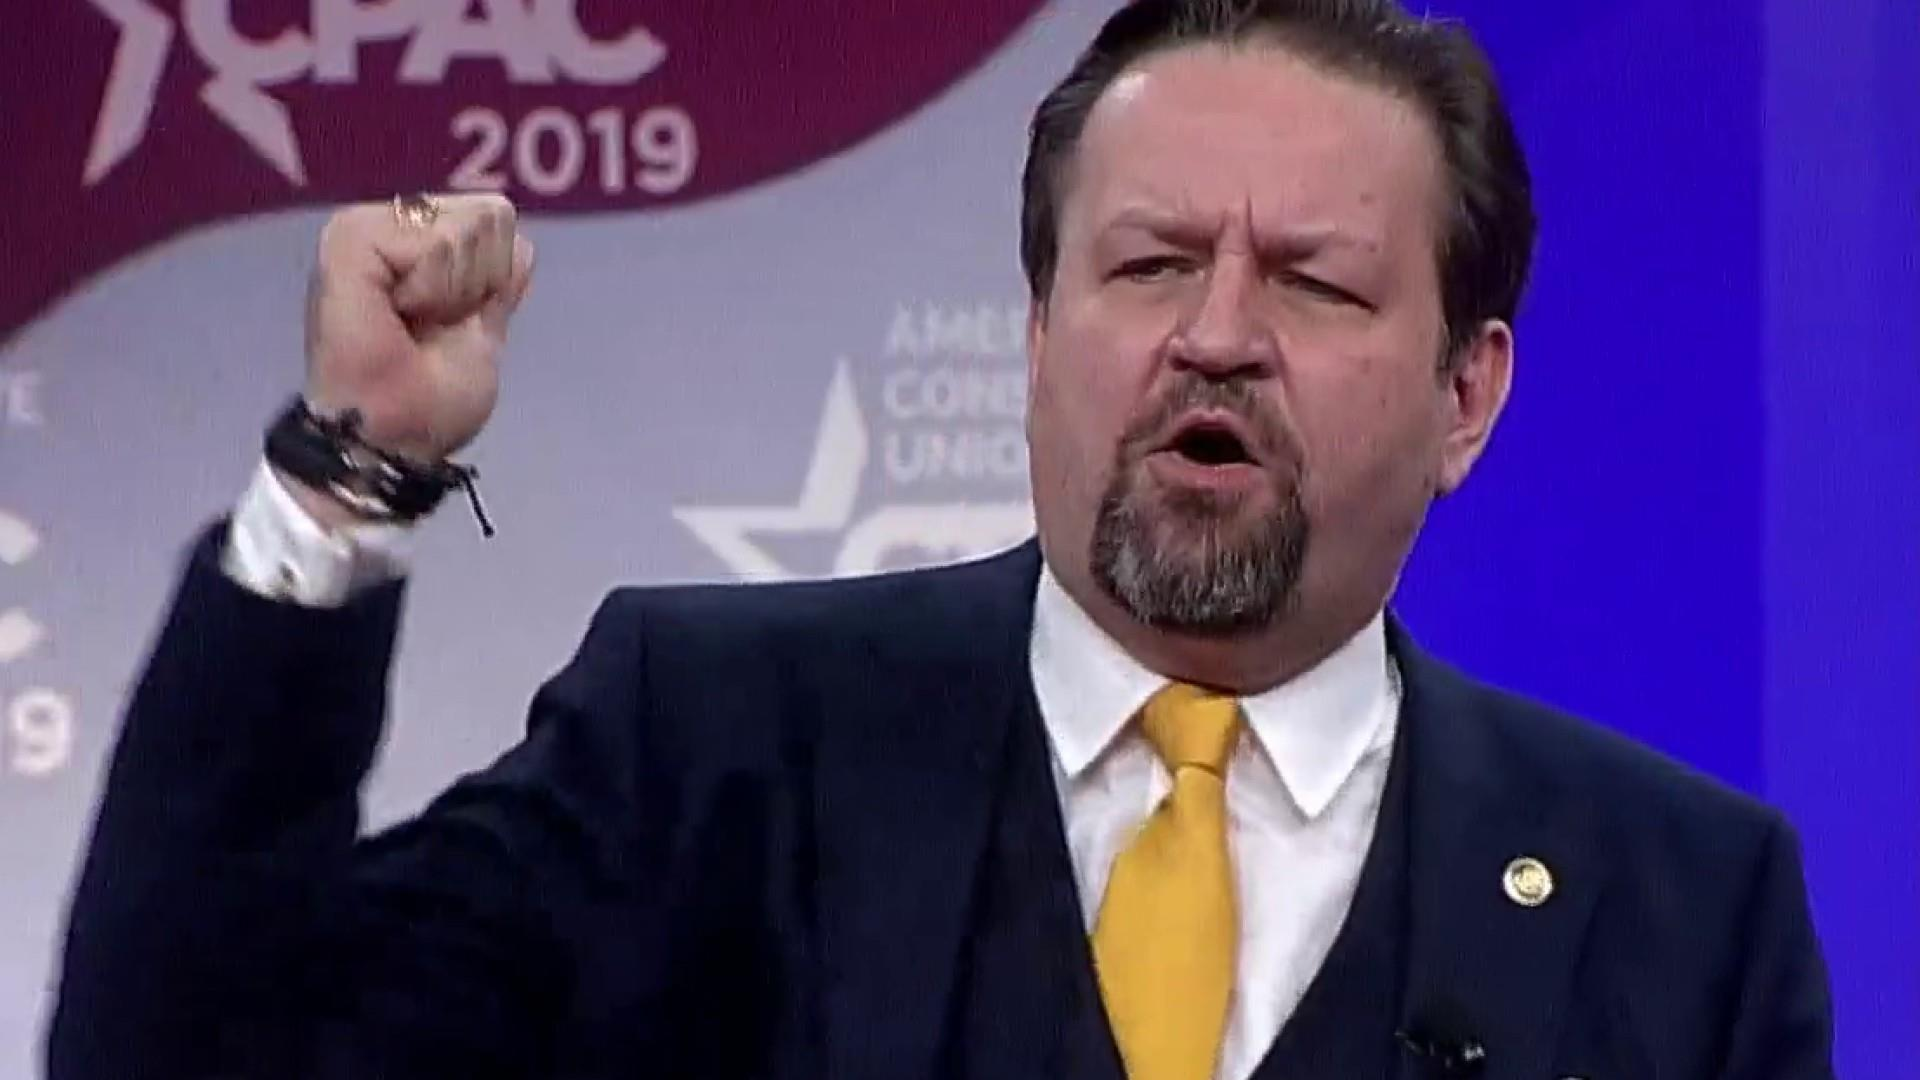 At CPAC Gorka claims Dems 'want to take away your hamburgers'